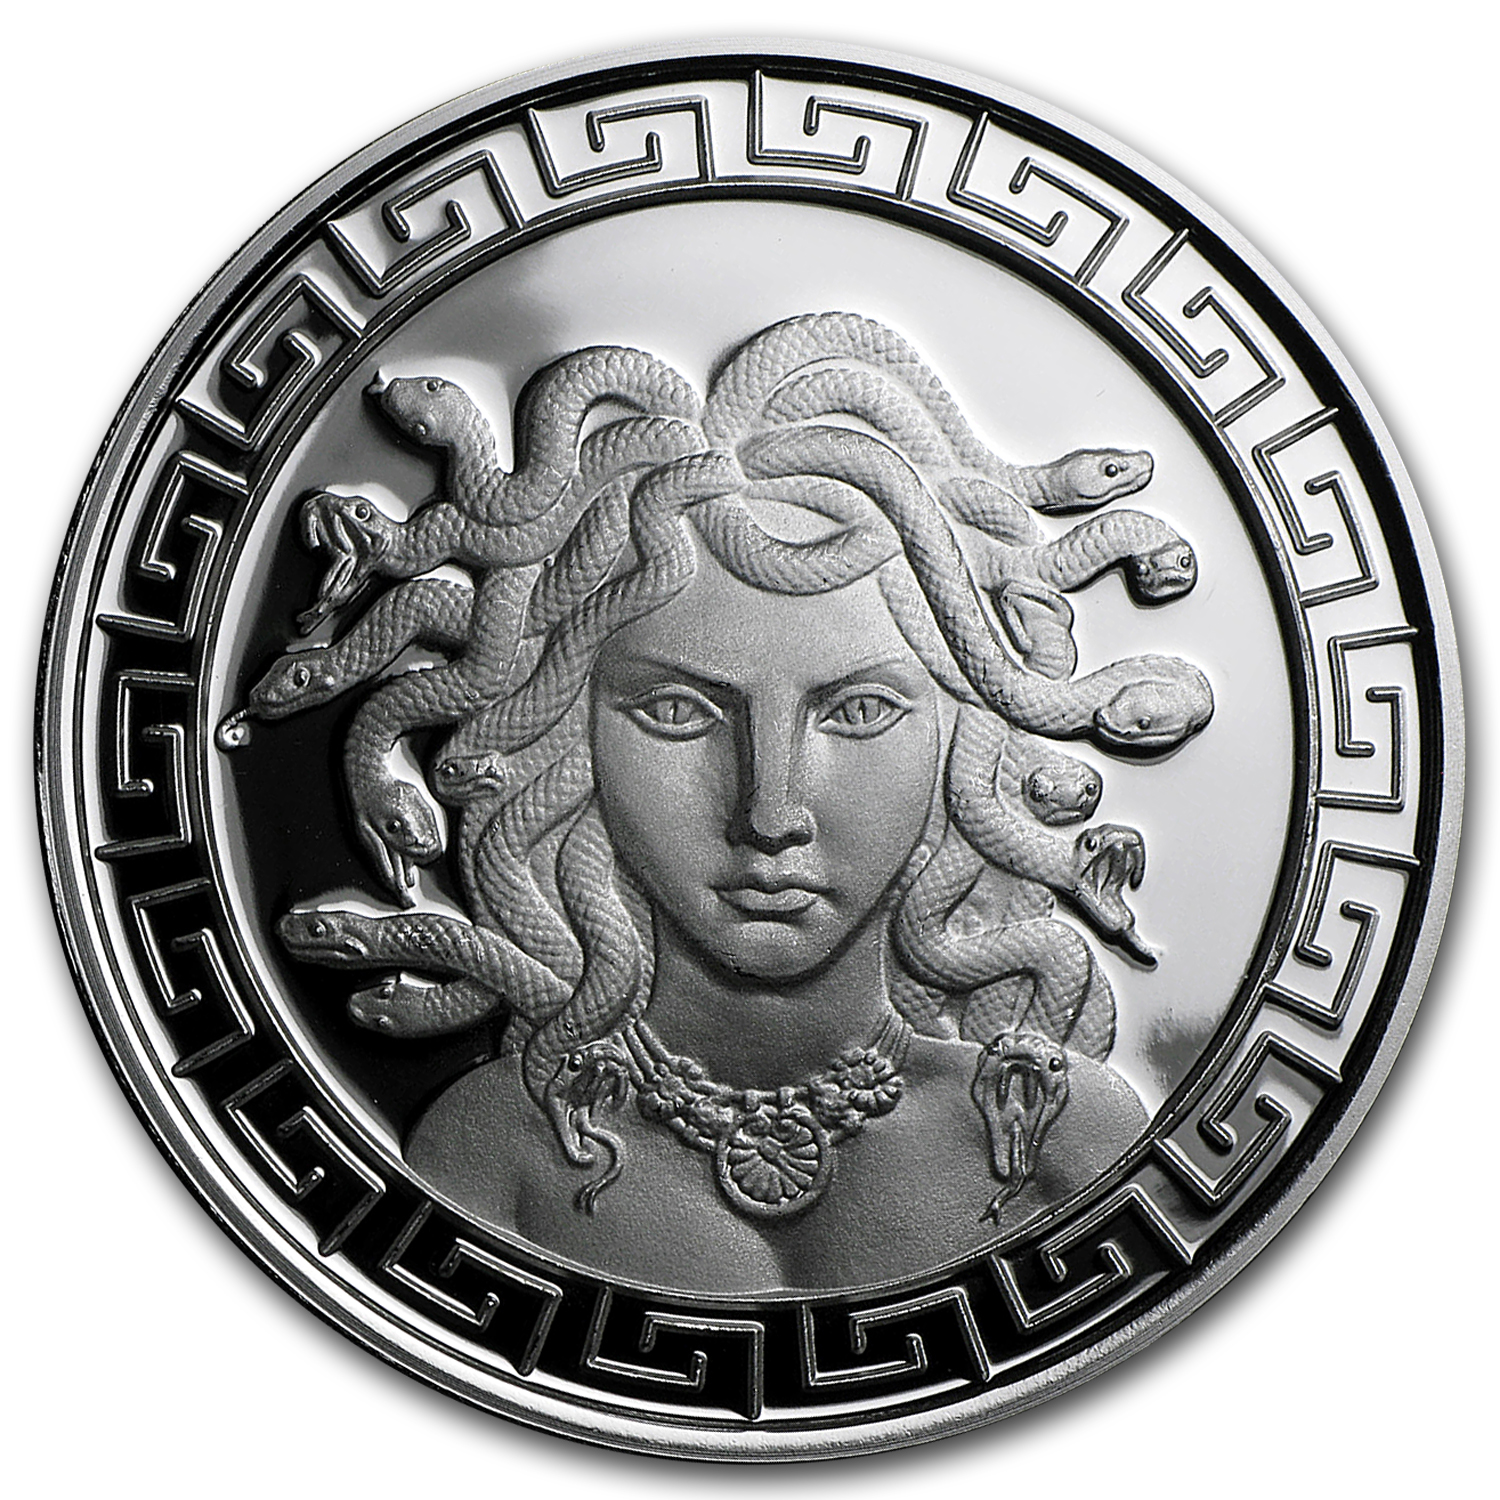 1 oz Silver Round - Classic Greek Medusa (Prooflike)